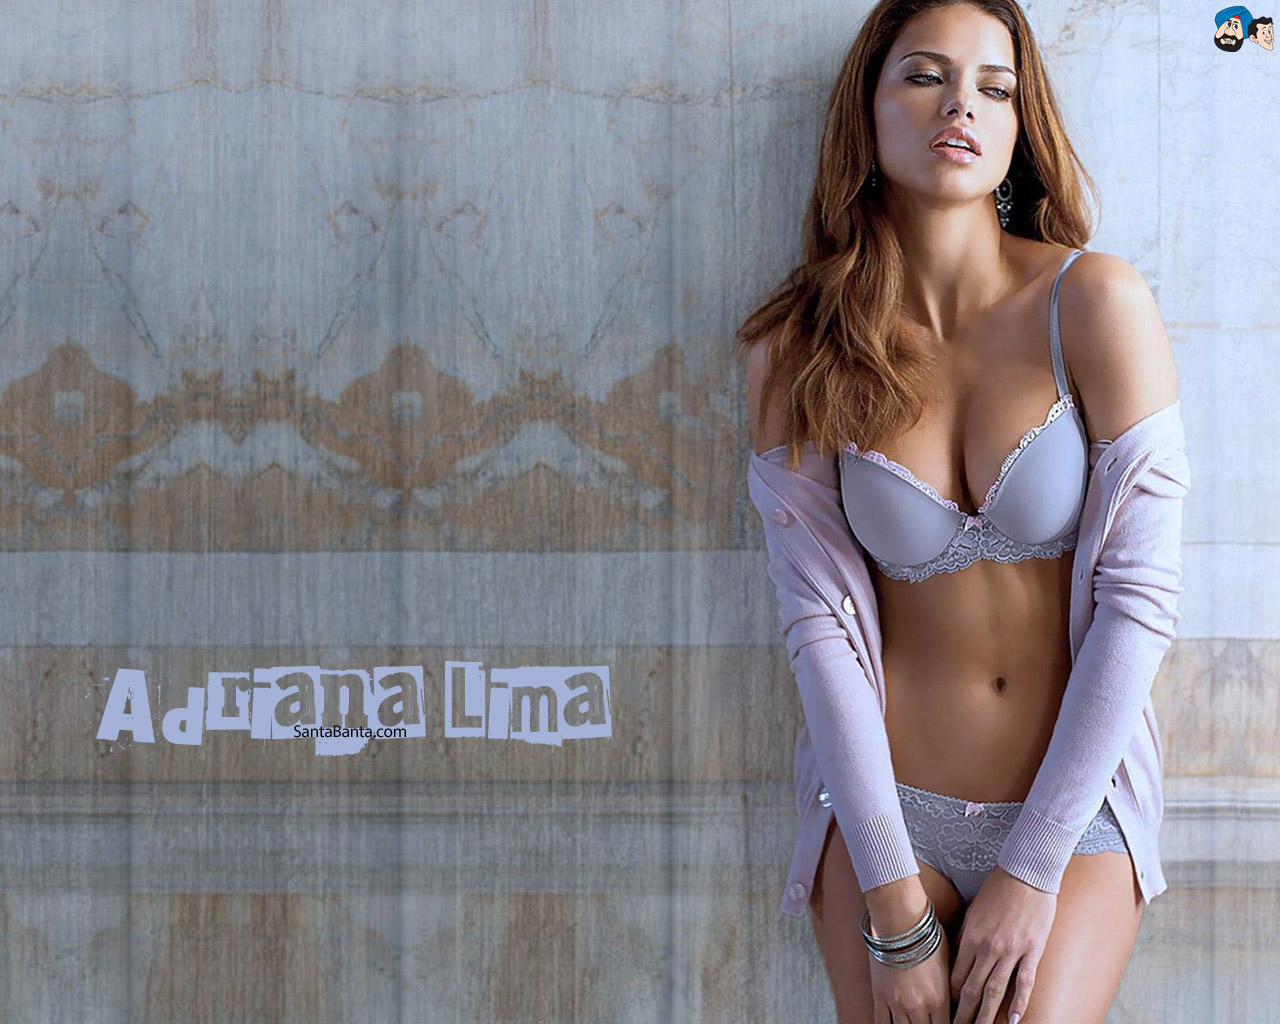 adriana lima hd wallpapers | most beautiful places in the world